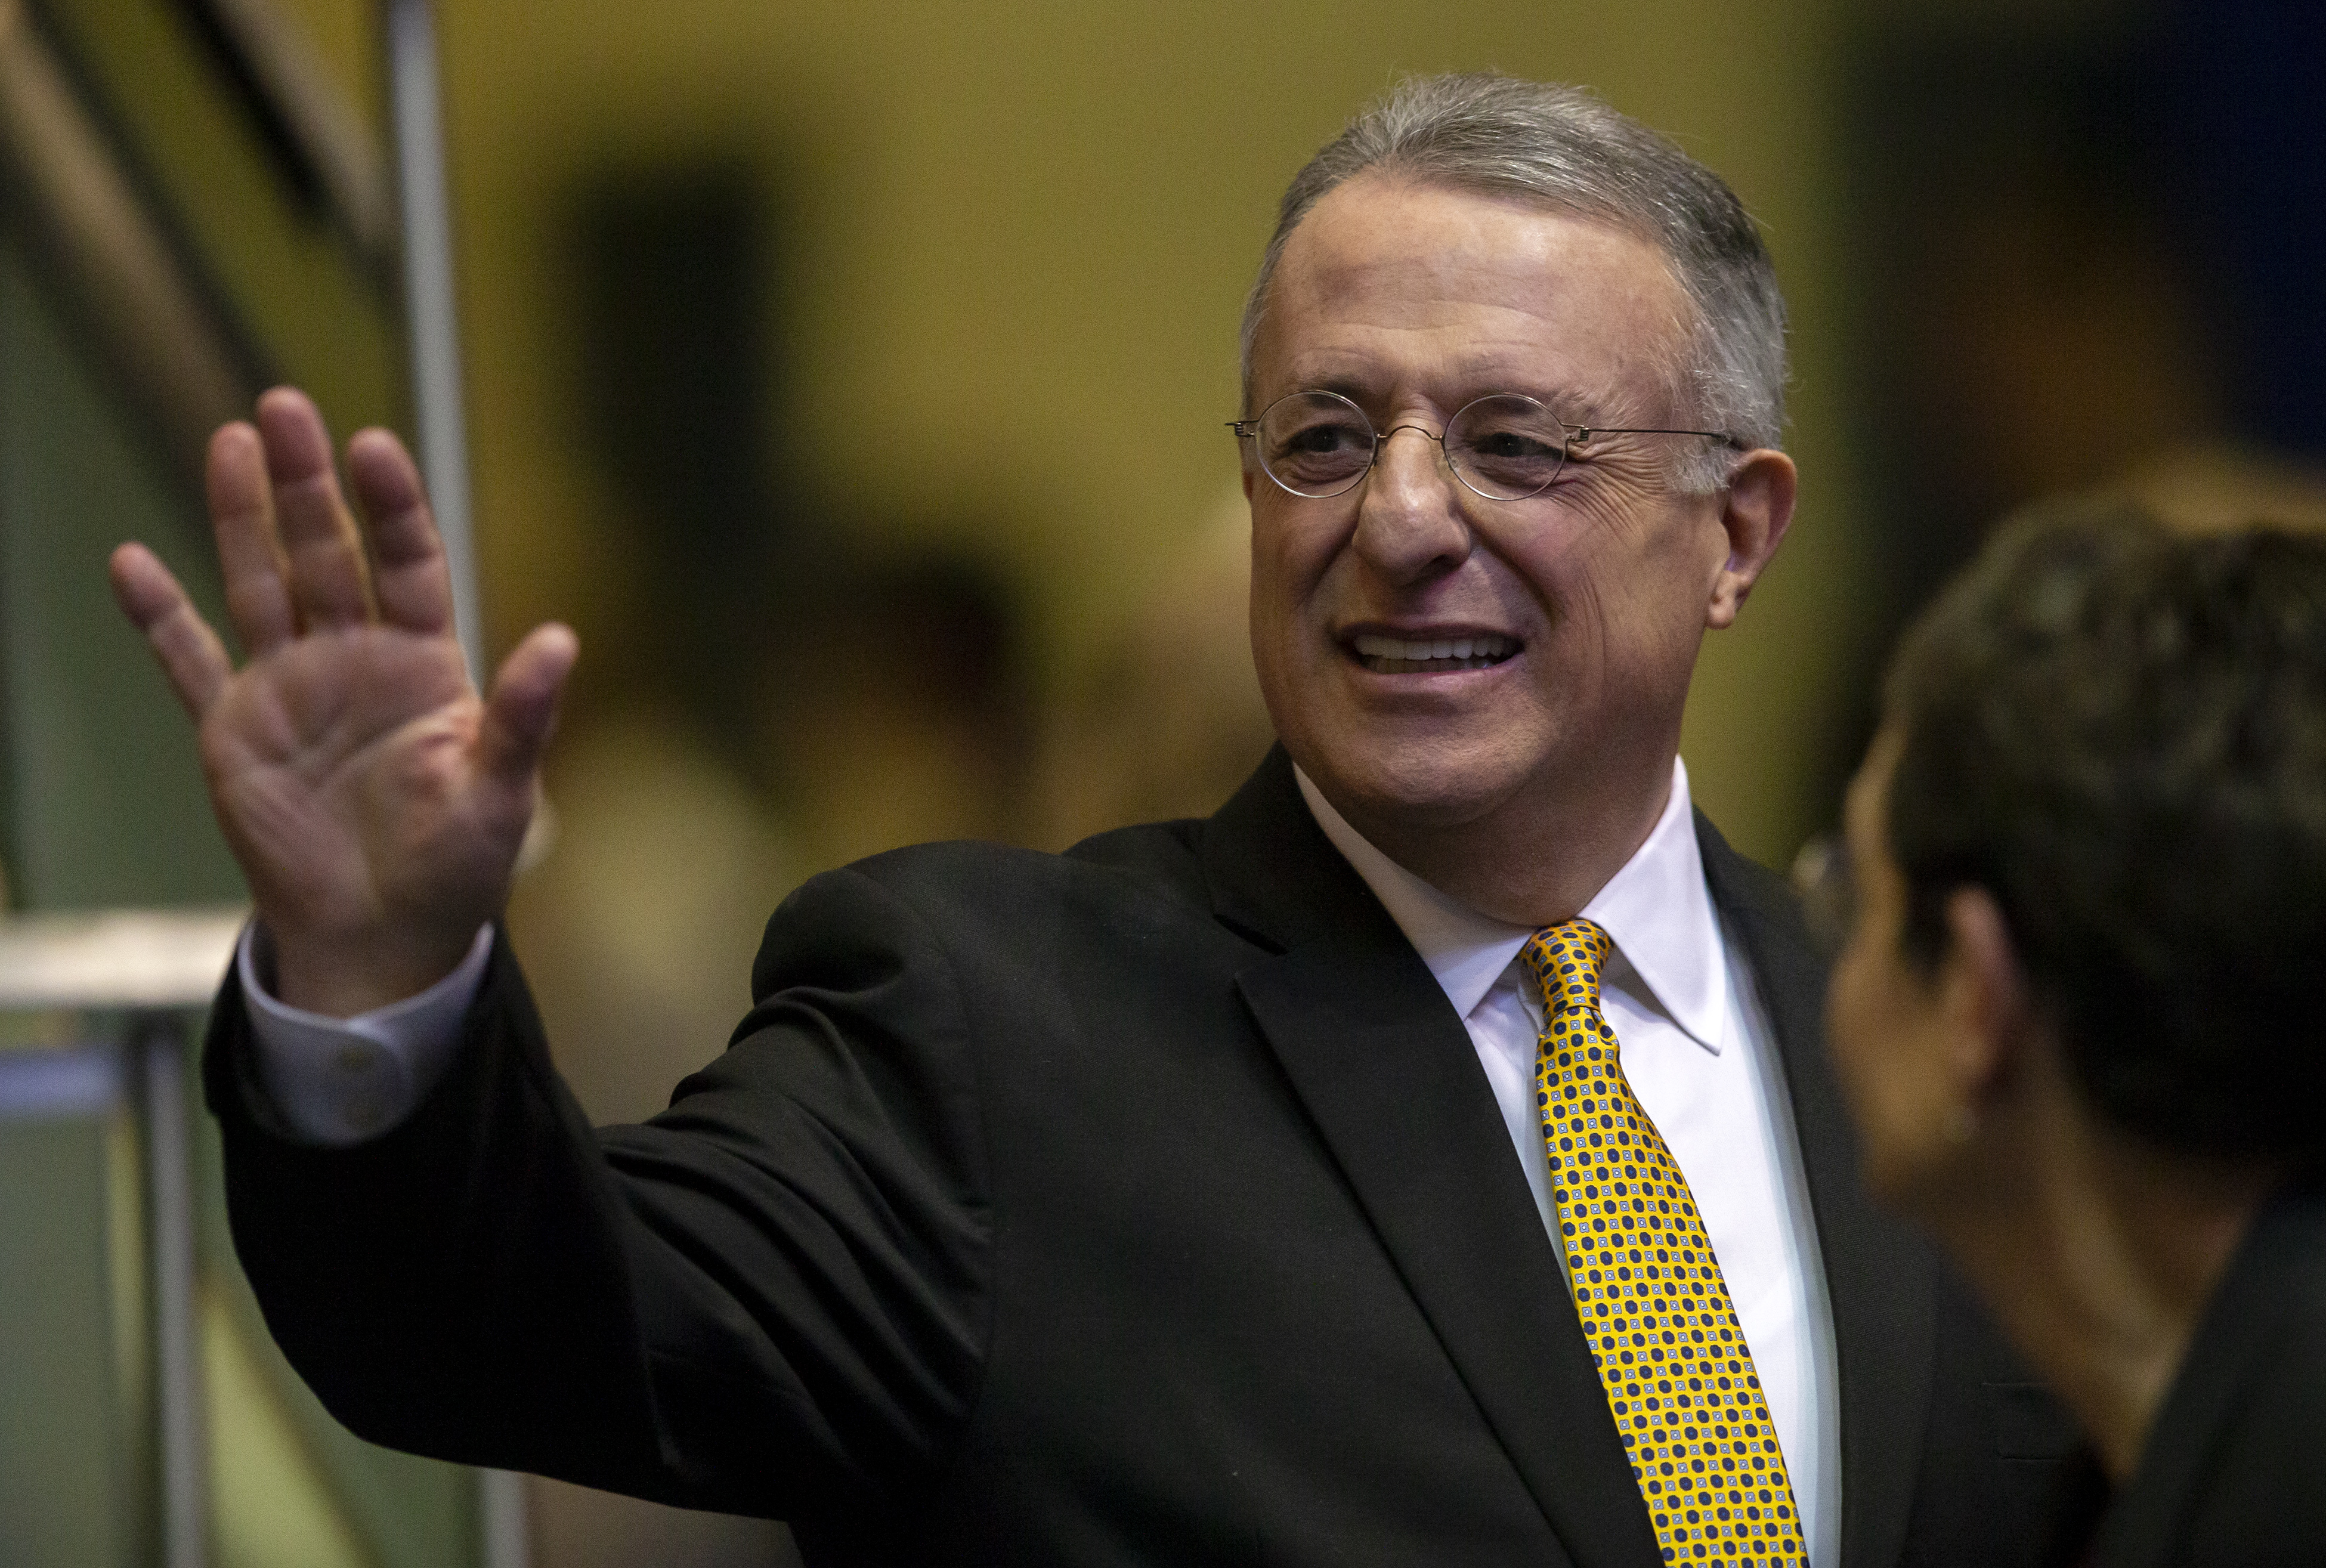 Elder Ulisses Soares of the Quorum of the Twelve Apostles of The Church of Jesus Christ of Latter-day Saints waves as he exits after speaking at a devotional at BYU in Provo on Tuesday, Feb. 5, 2019.